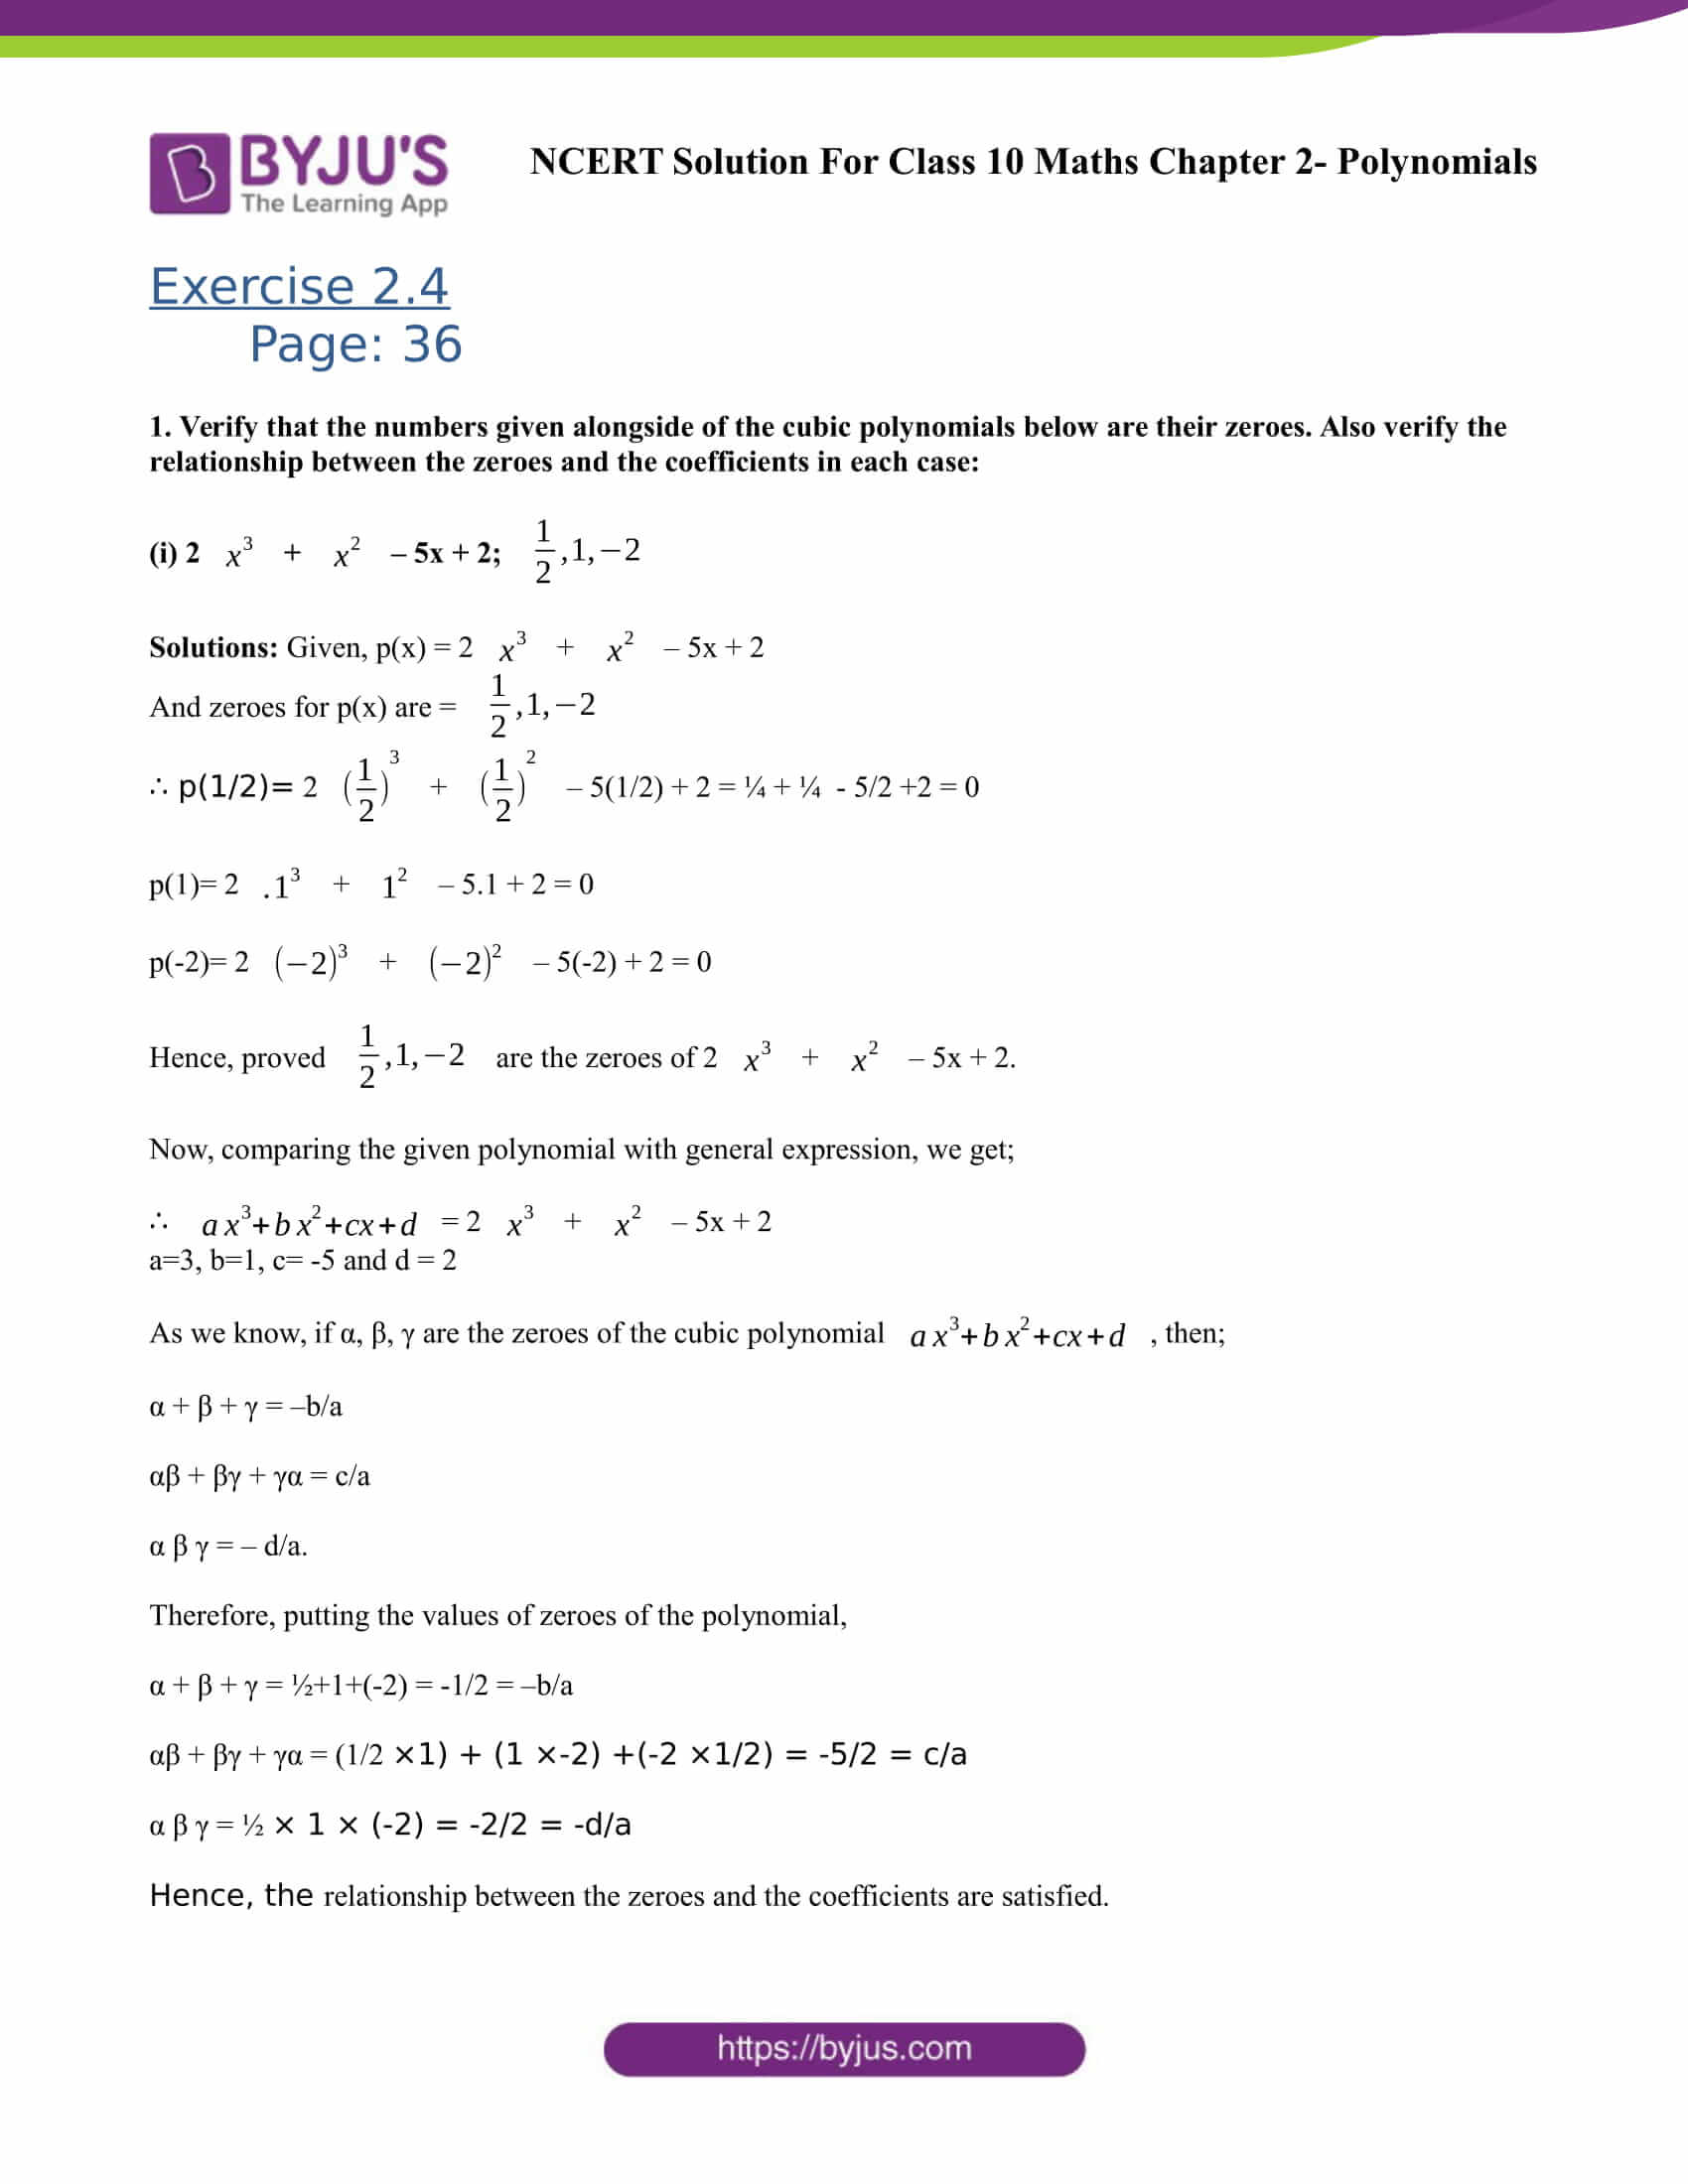 NCERT Solutions for Class 10 Maths Exercise 2 4 Chapter 2